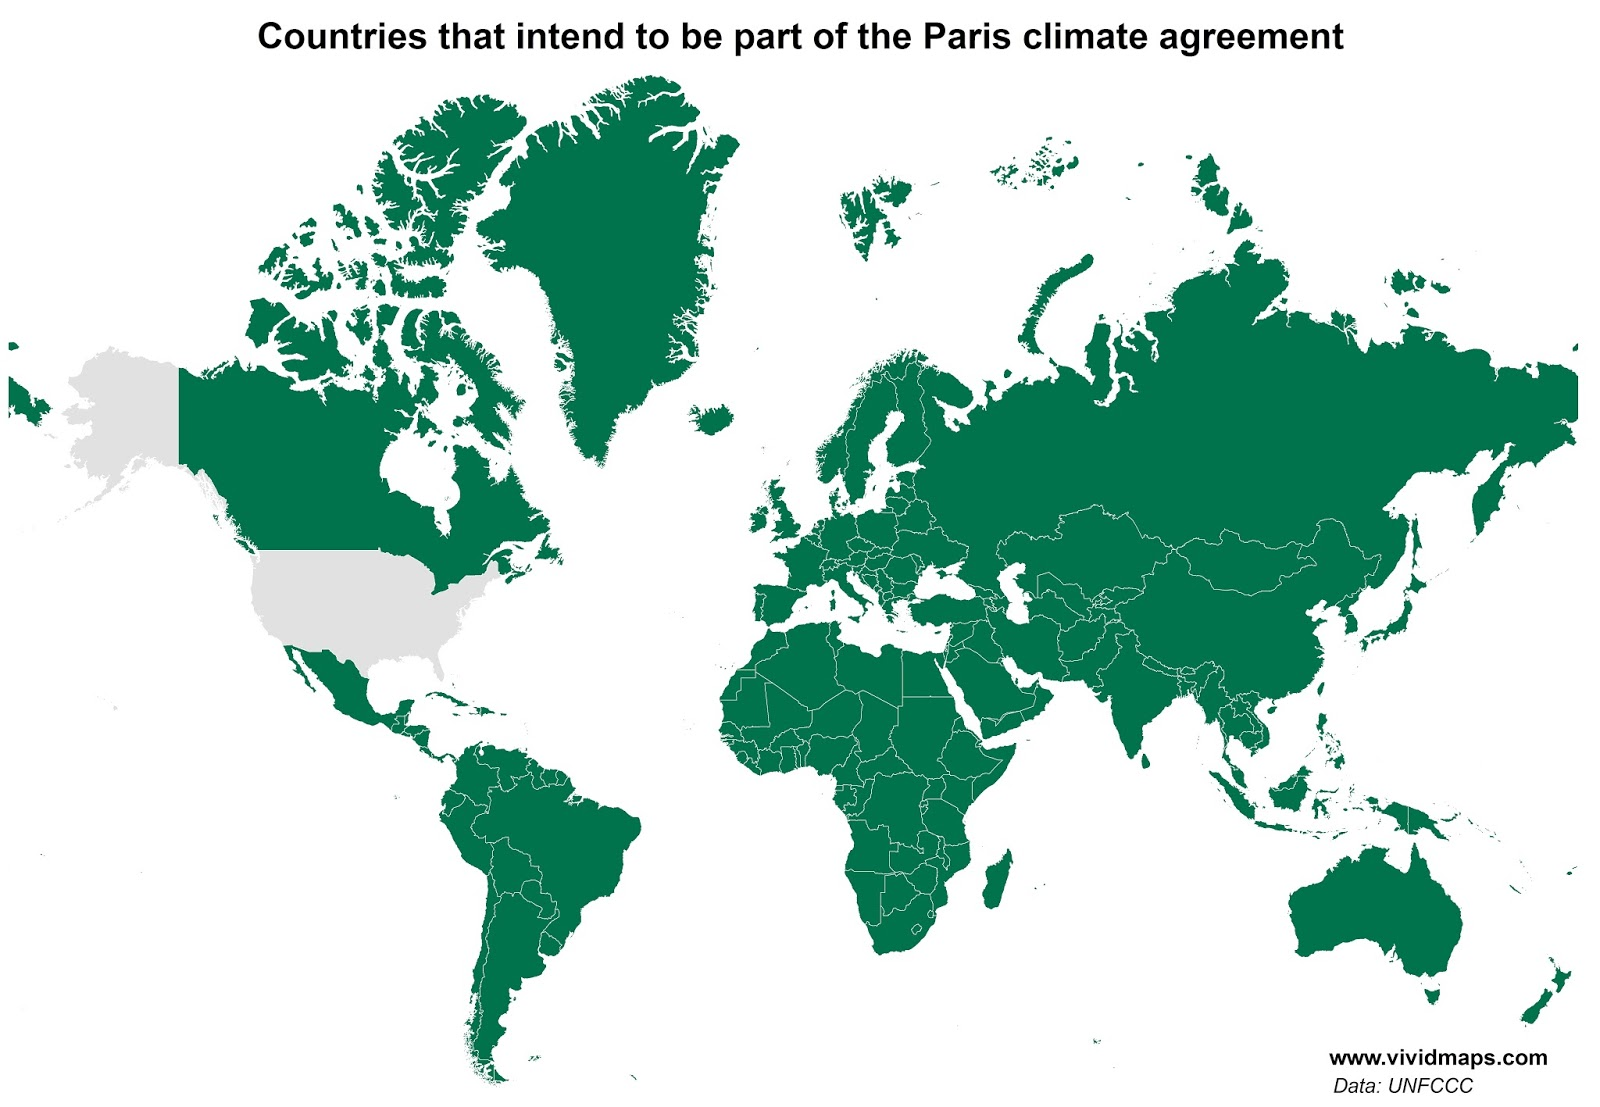 All countries have signed Paris agreement except the USA